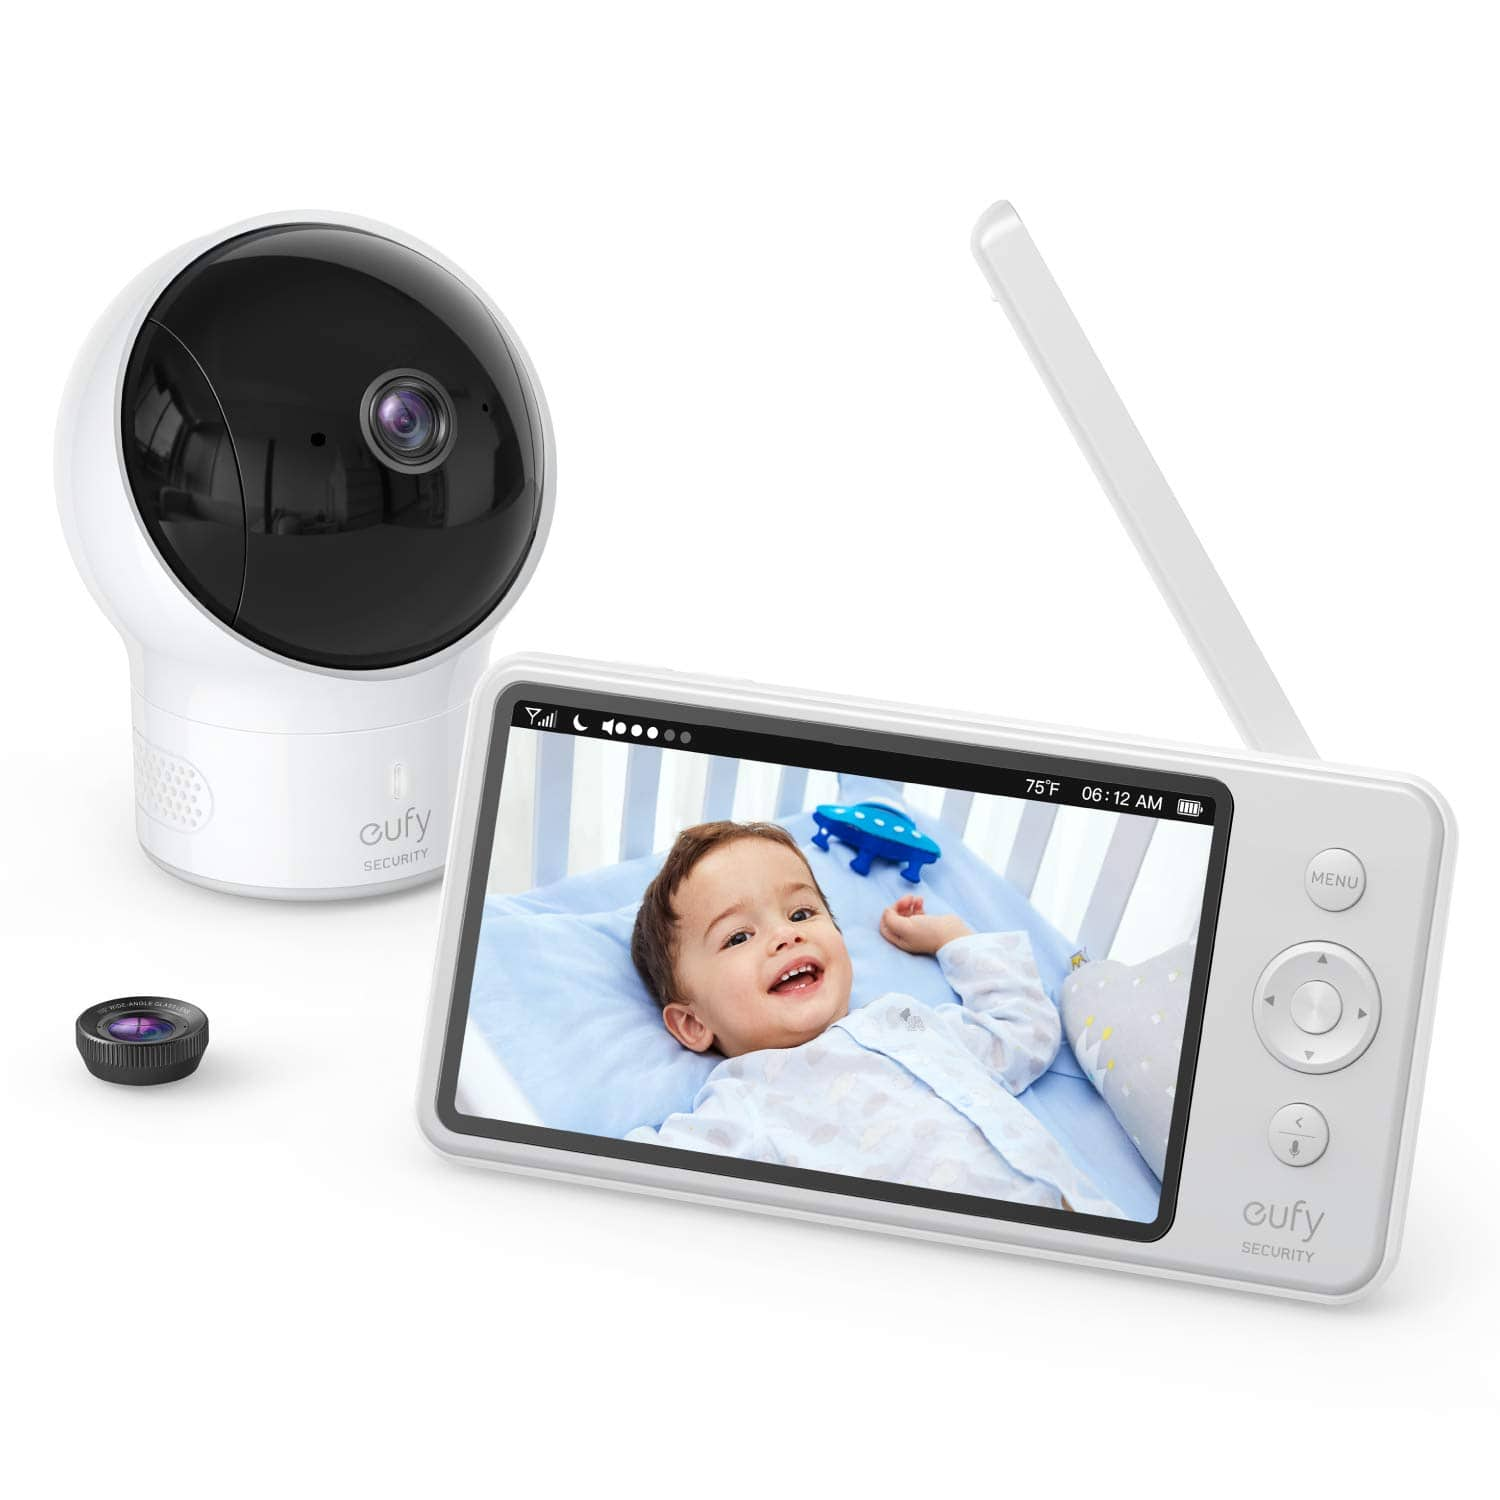 """Eufy Security SpaceView 5"""" LCD Video Baby Monitor w/ 720 HD Resolution - $100.84 + Free Shipping"""